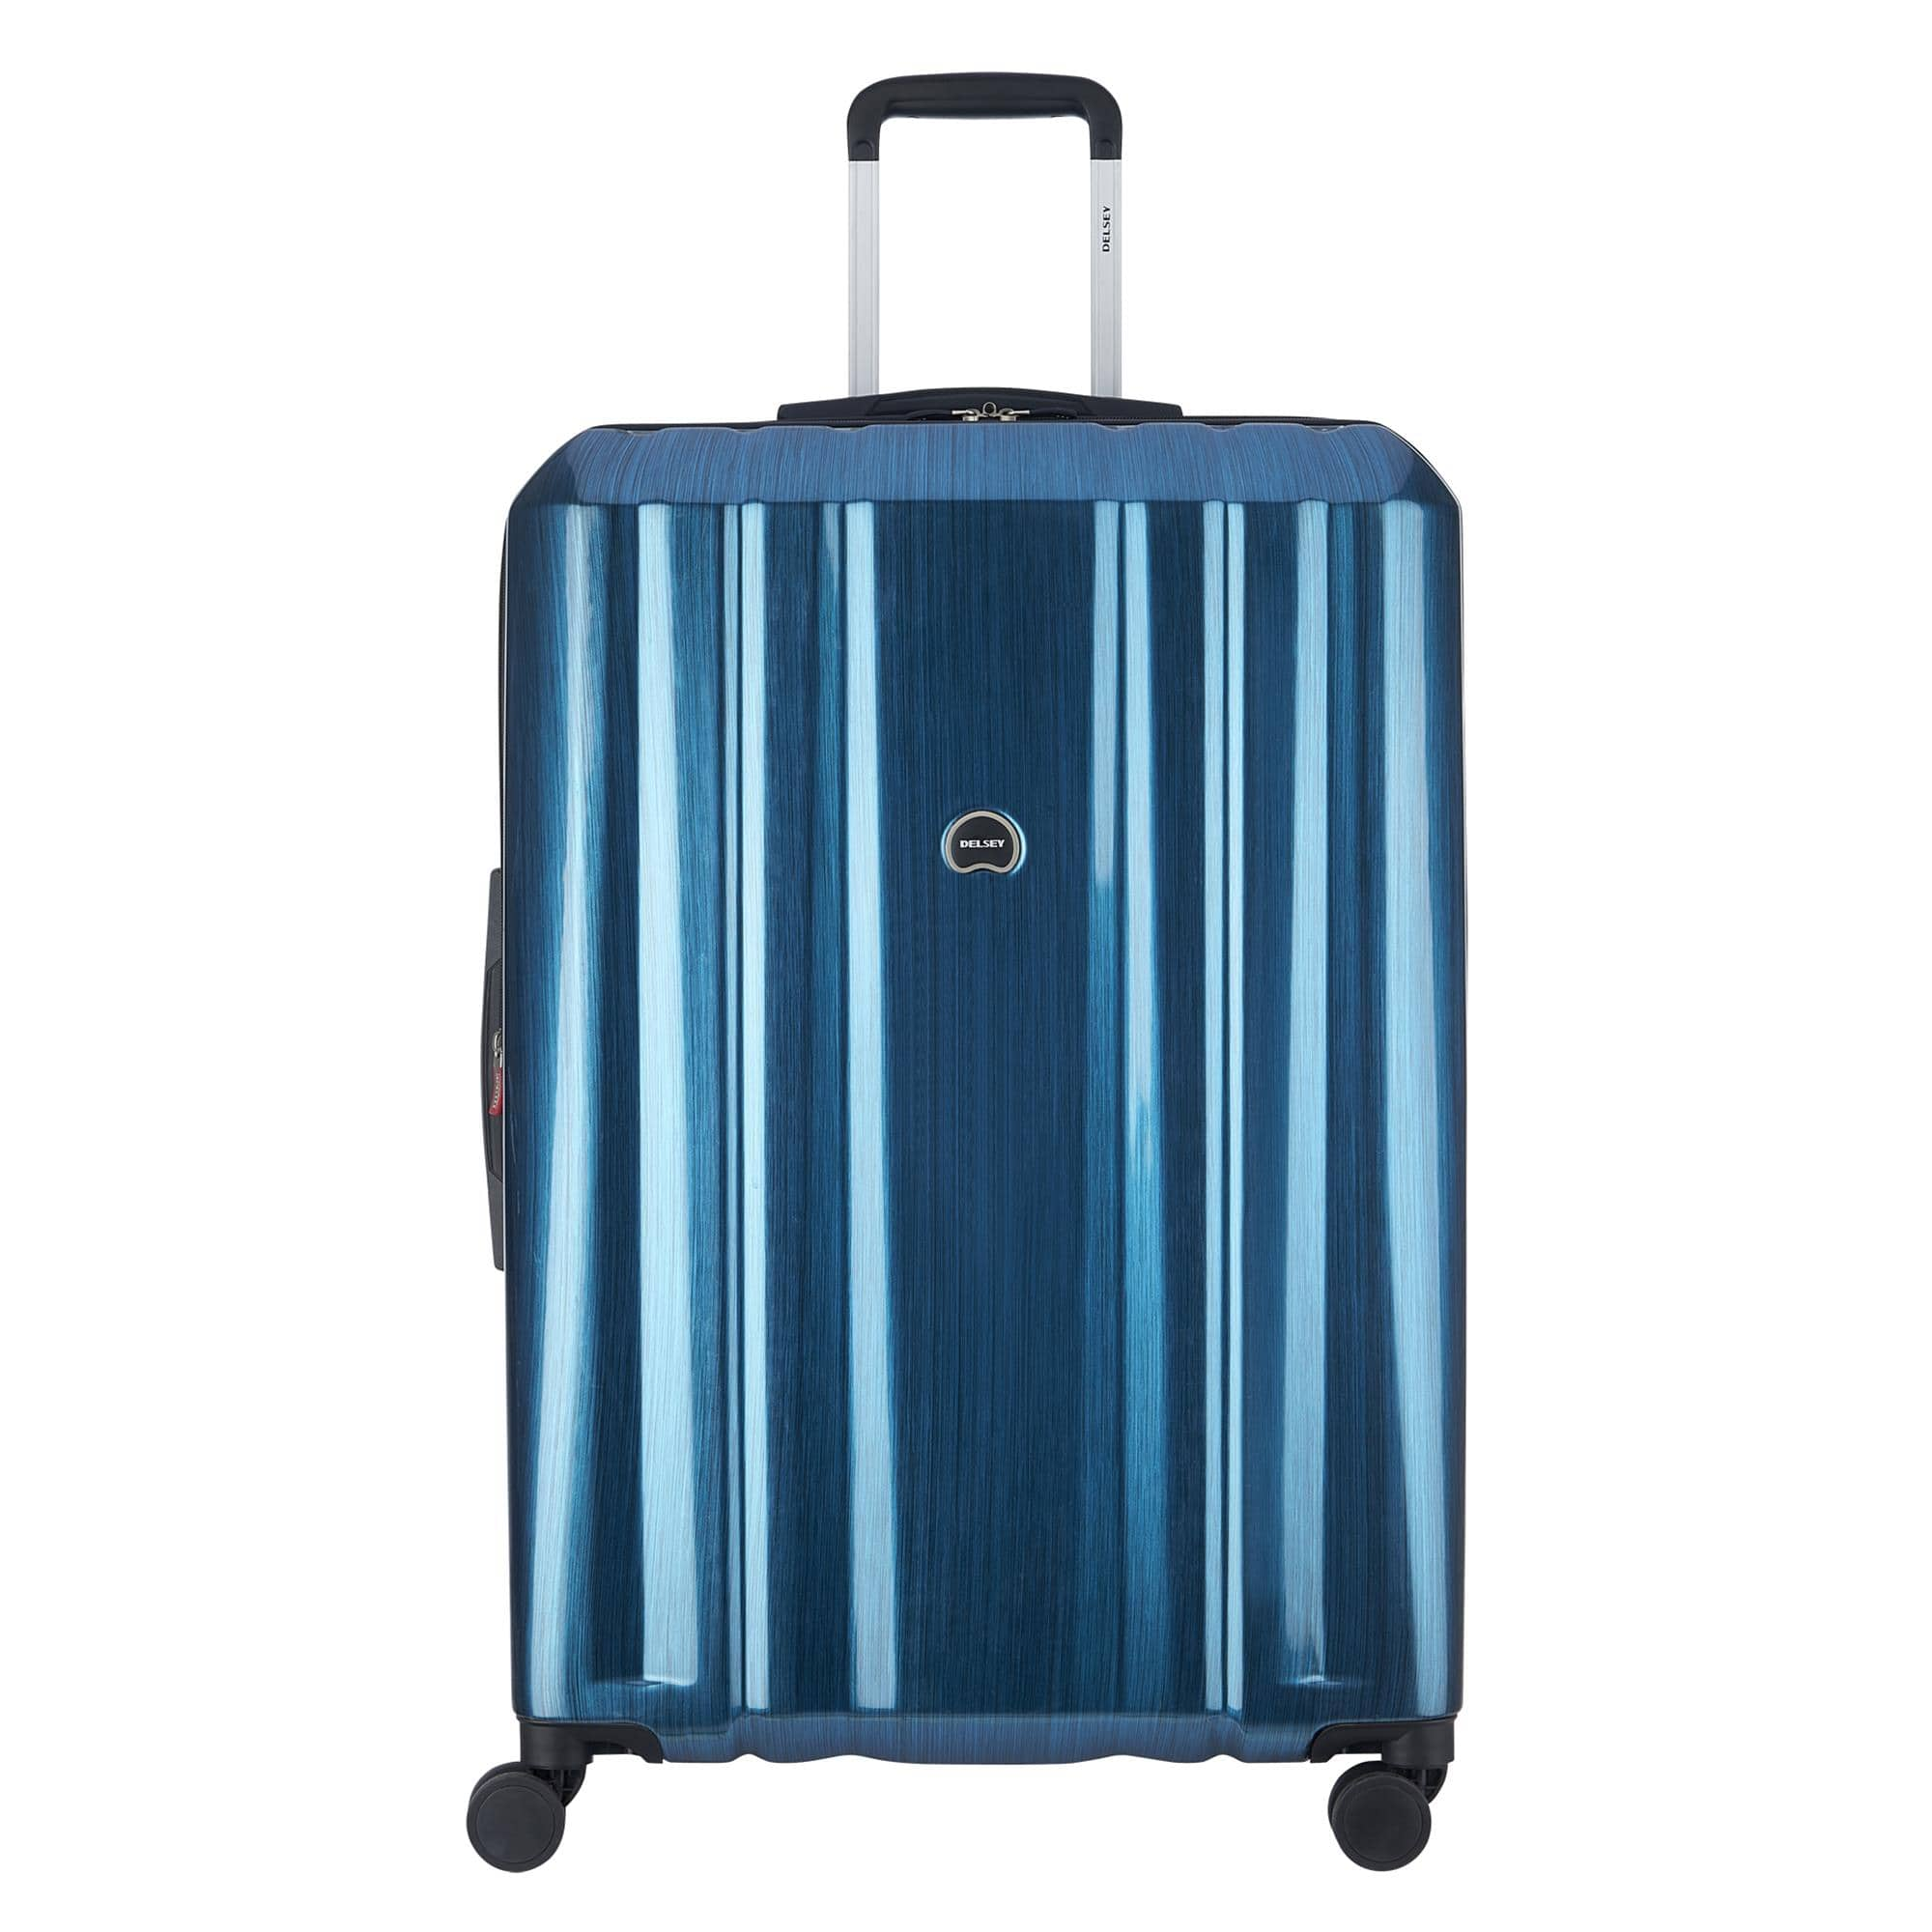 DELSEY Paris Black Friday Sale - Various Luggage:for $50 + Free Shipping